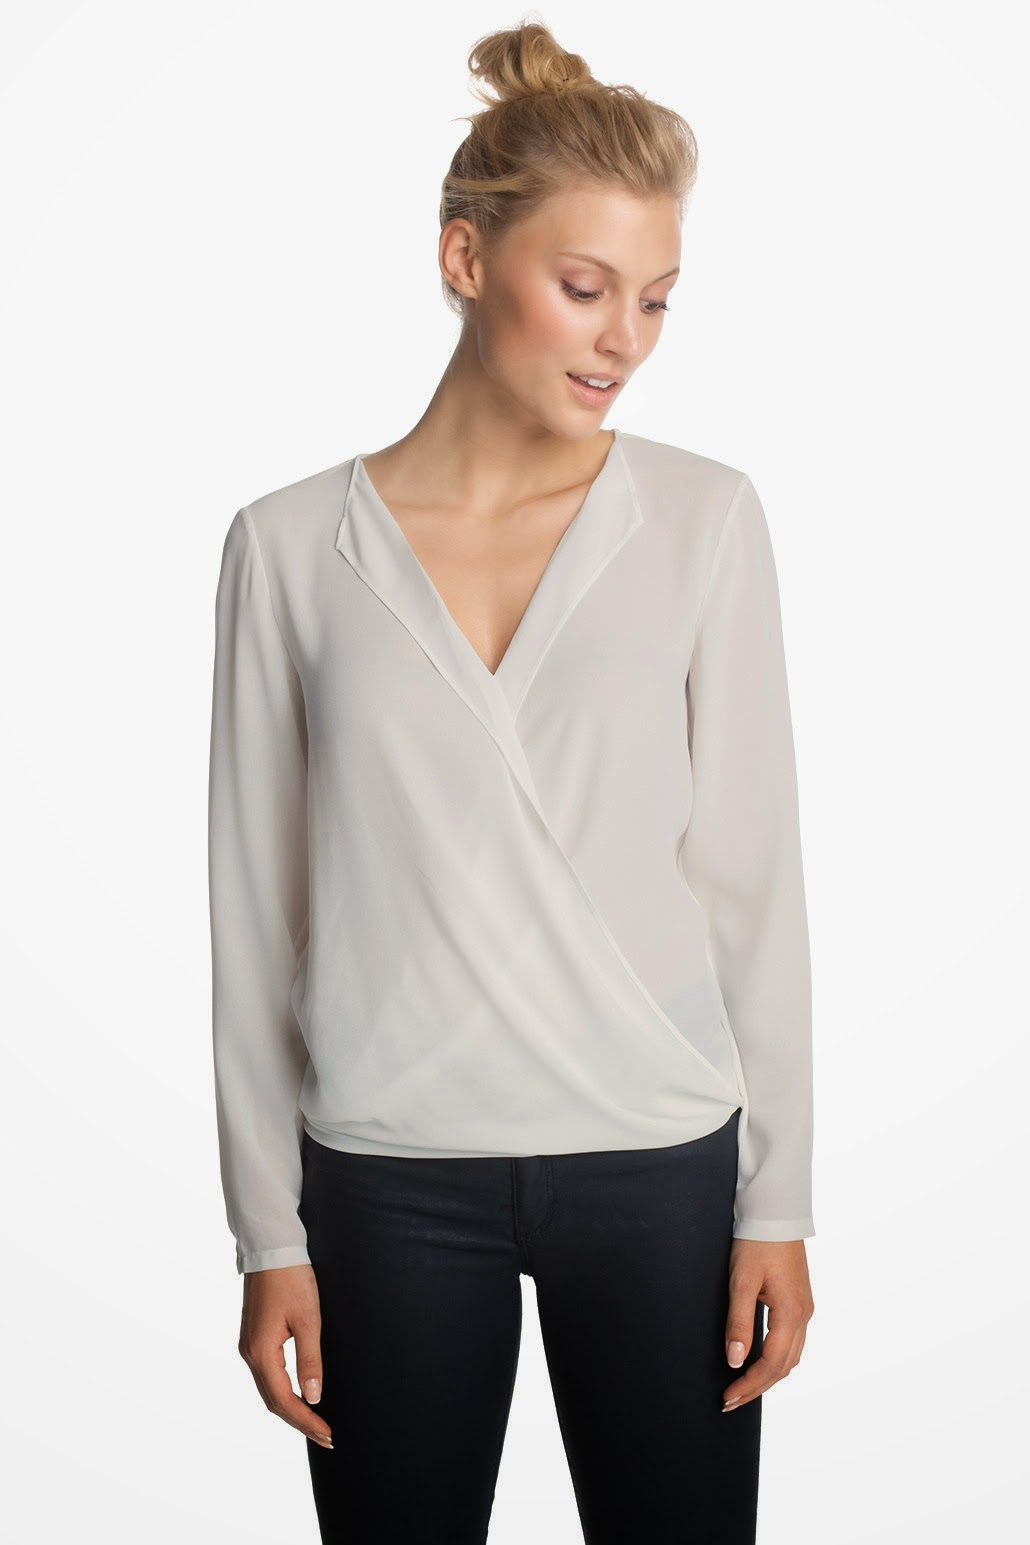 great formal blouse that would conceal psoriasis